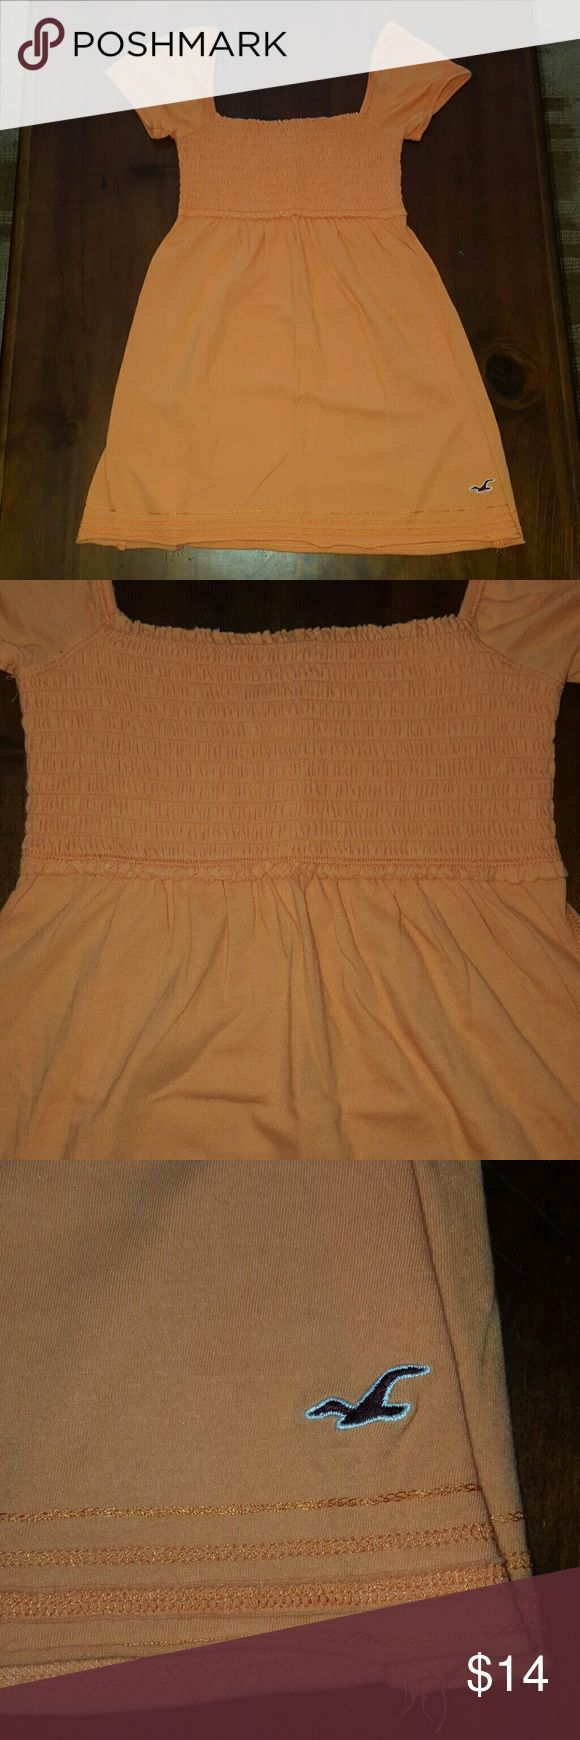 Hollister orange short sleeve top! This is a sweet little top in a pretty light orange! The first and last pics are the truest color! This top is in excellent condition! Hollister Tops